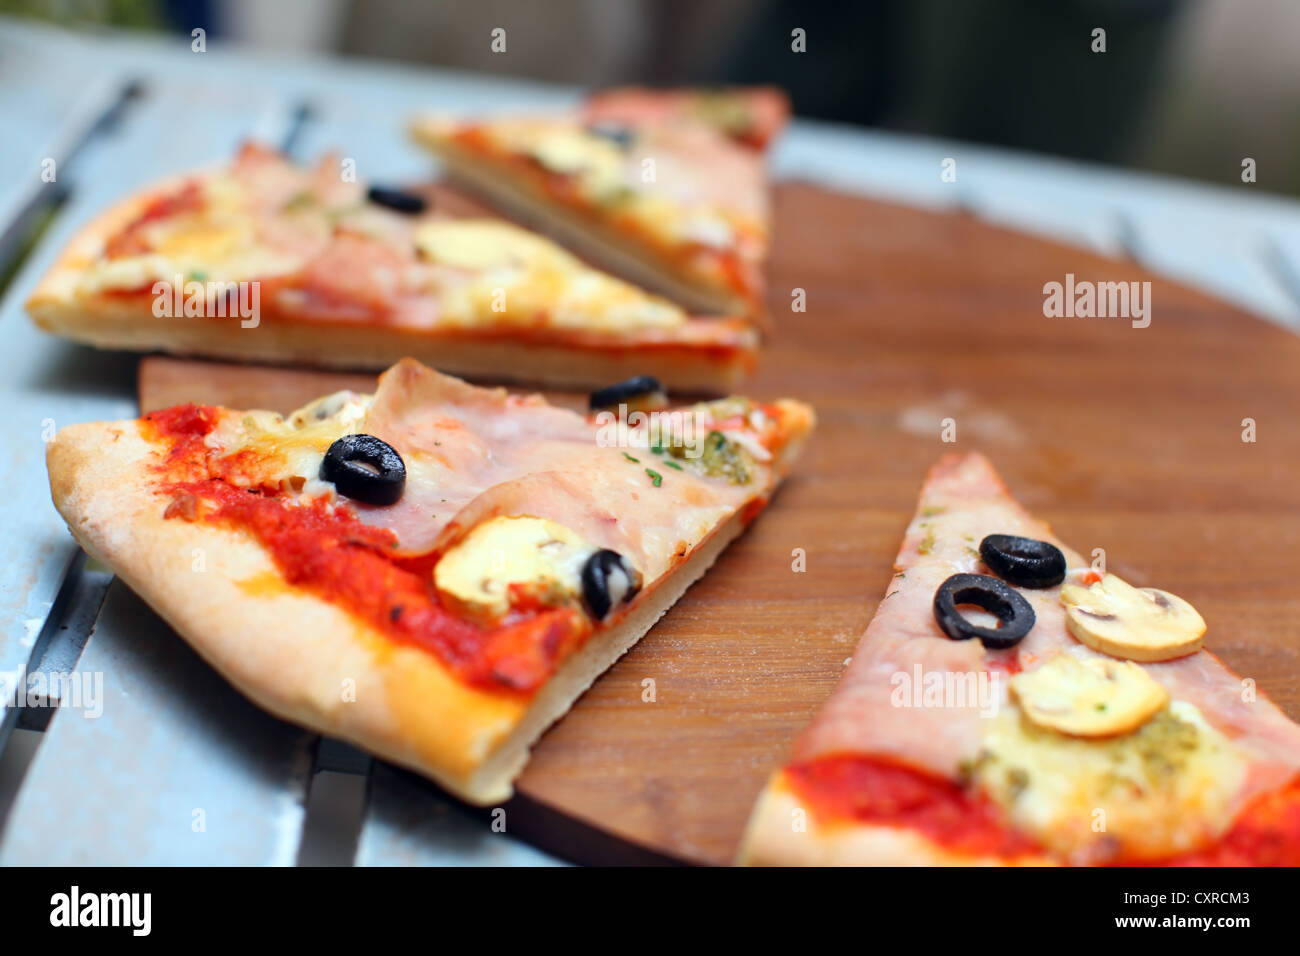 Sliced pizza with ham and olives on a wooden board - Stock Image